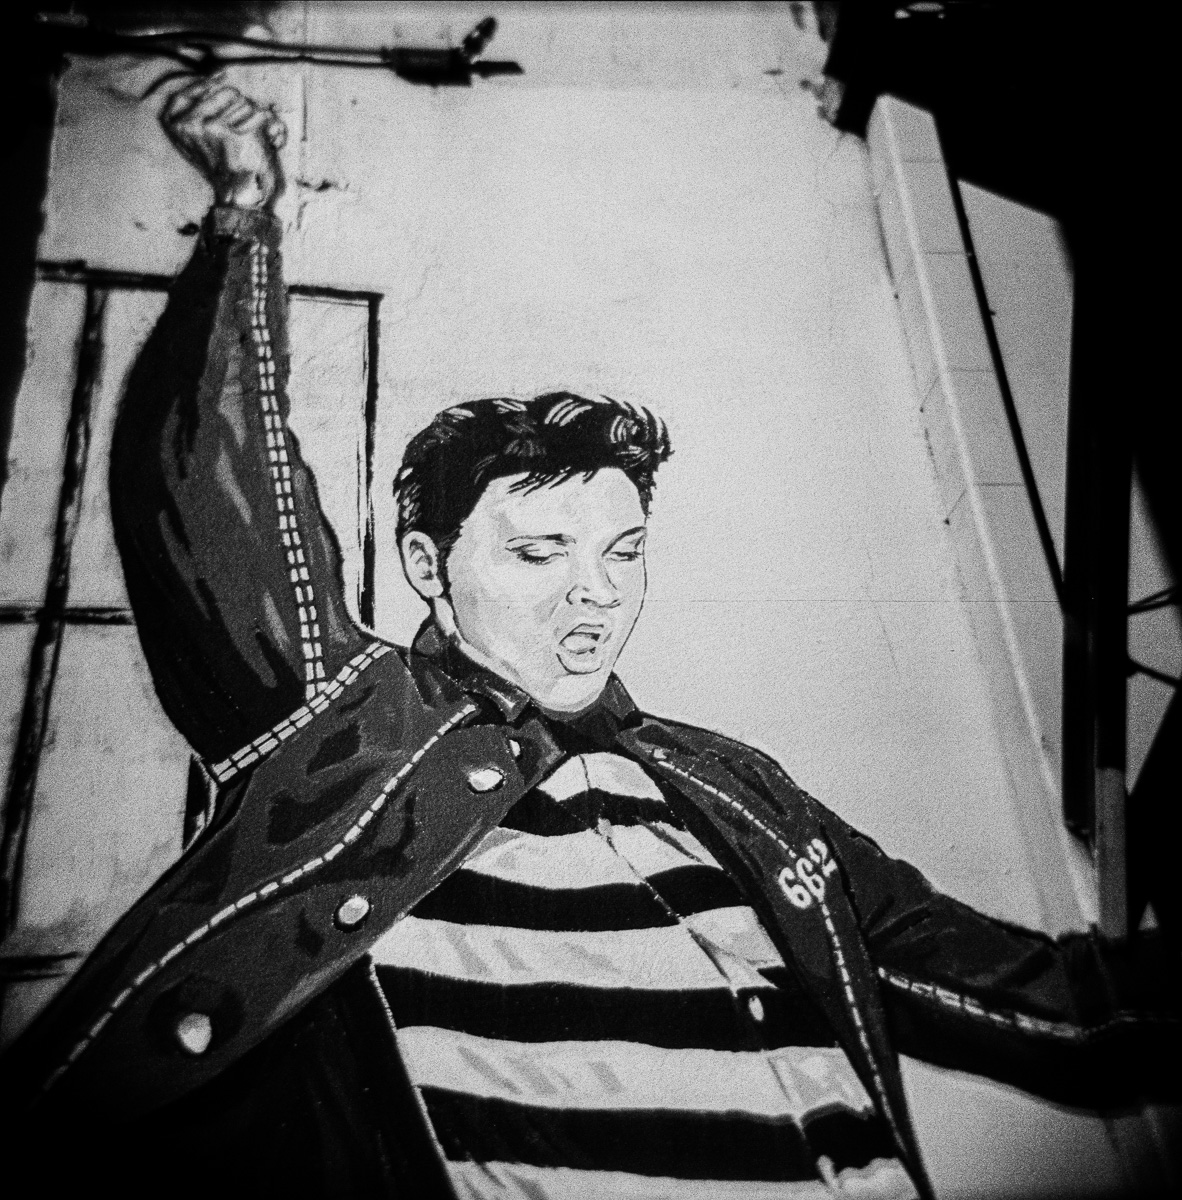 Elvis from Jailhouse Rock on the wall in Tupleo Mississippi